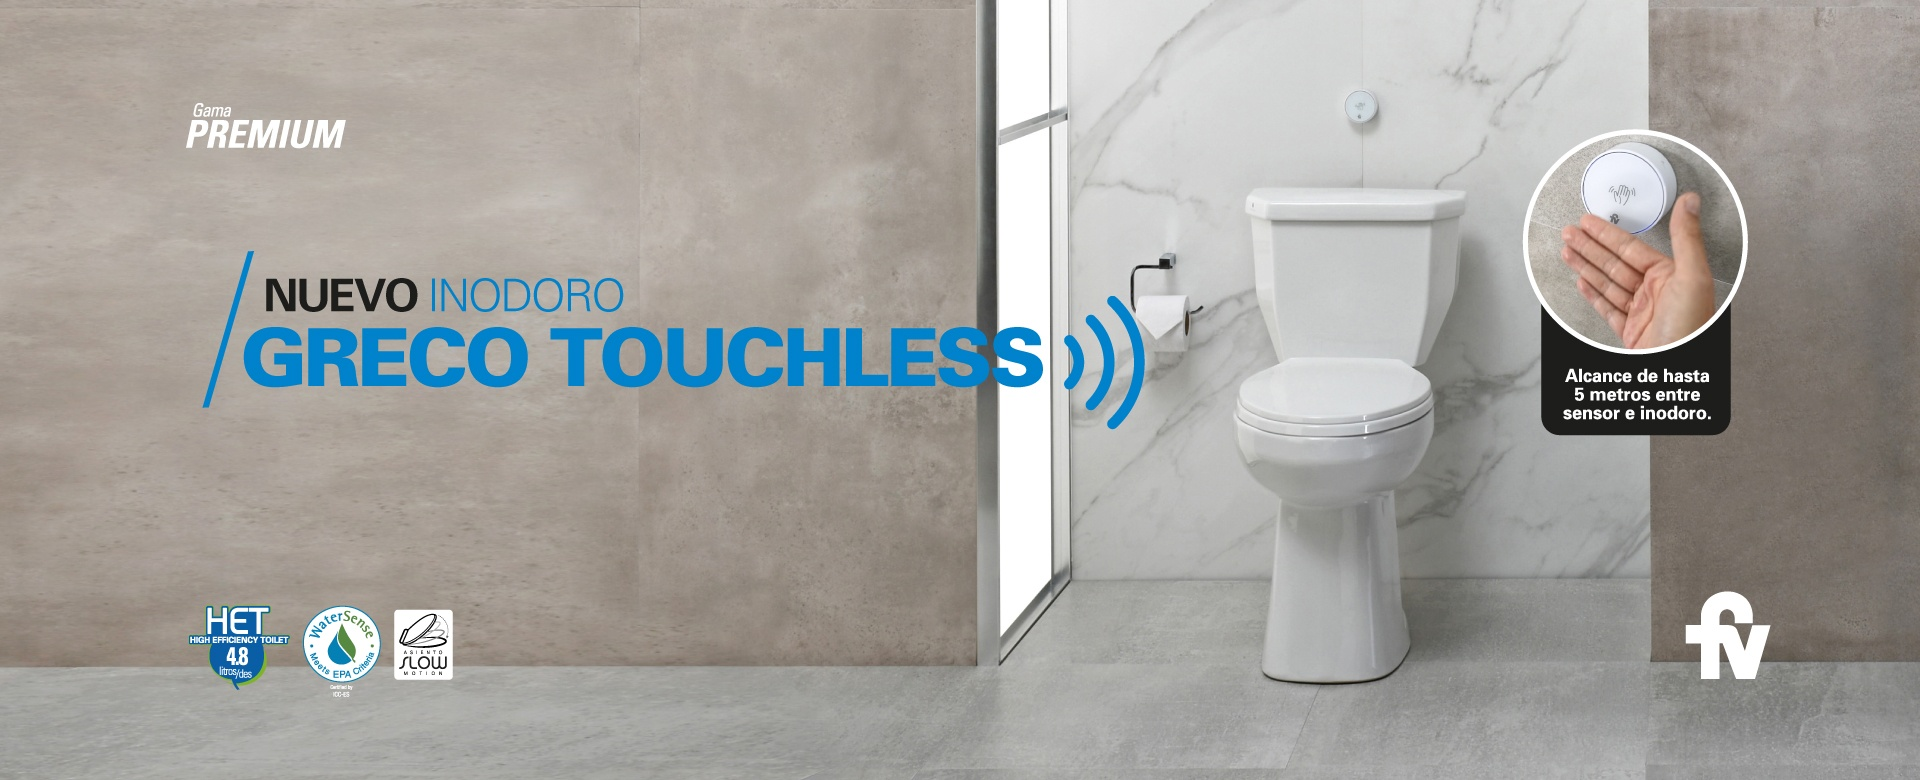 GRECO-TOUCHLESS